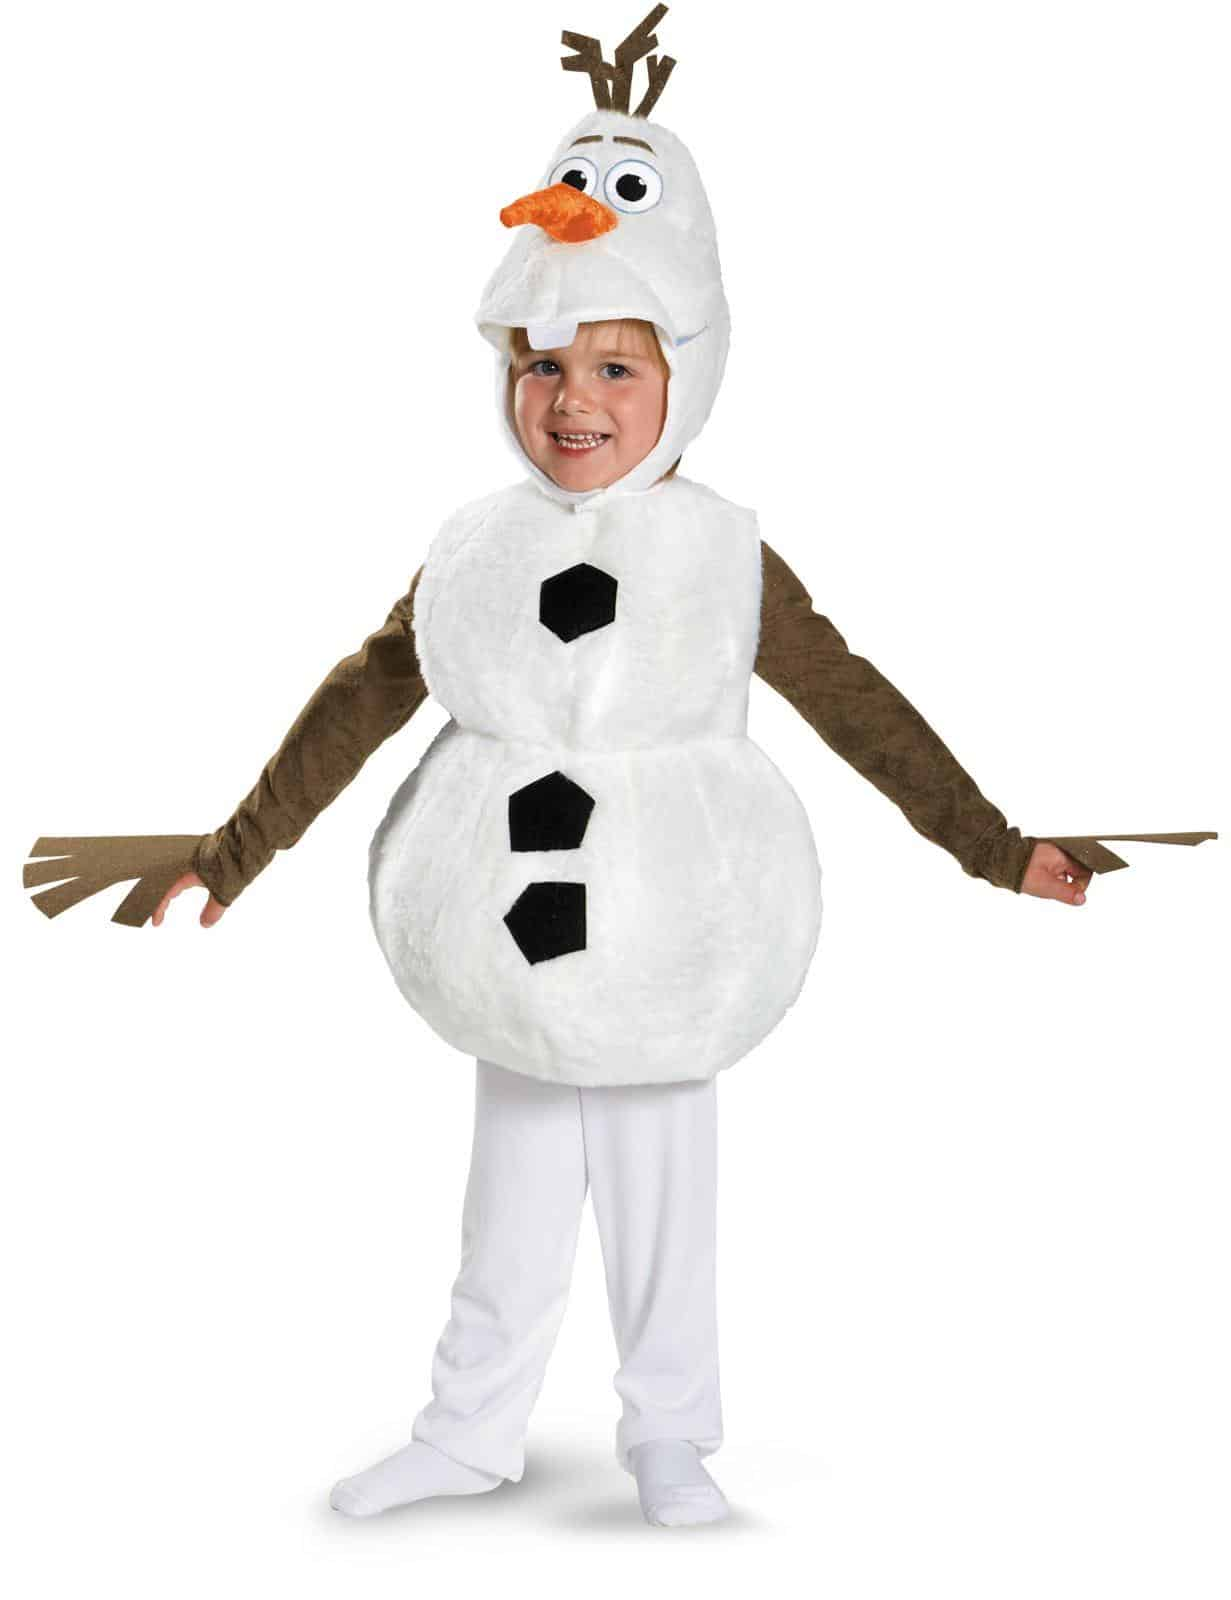 Frozen - Deluxe Olaf Infant / Toddler Costume